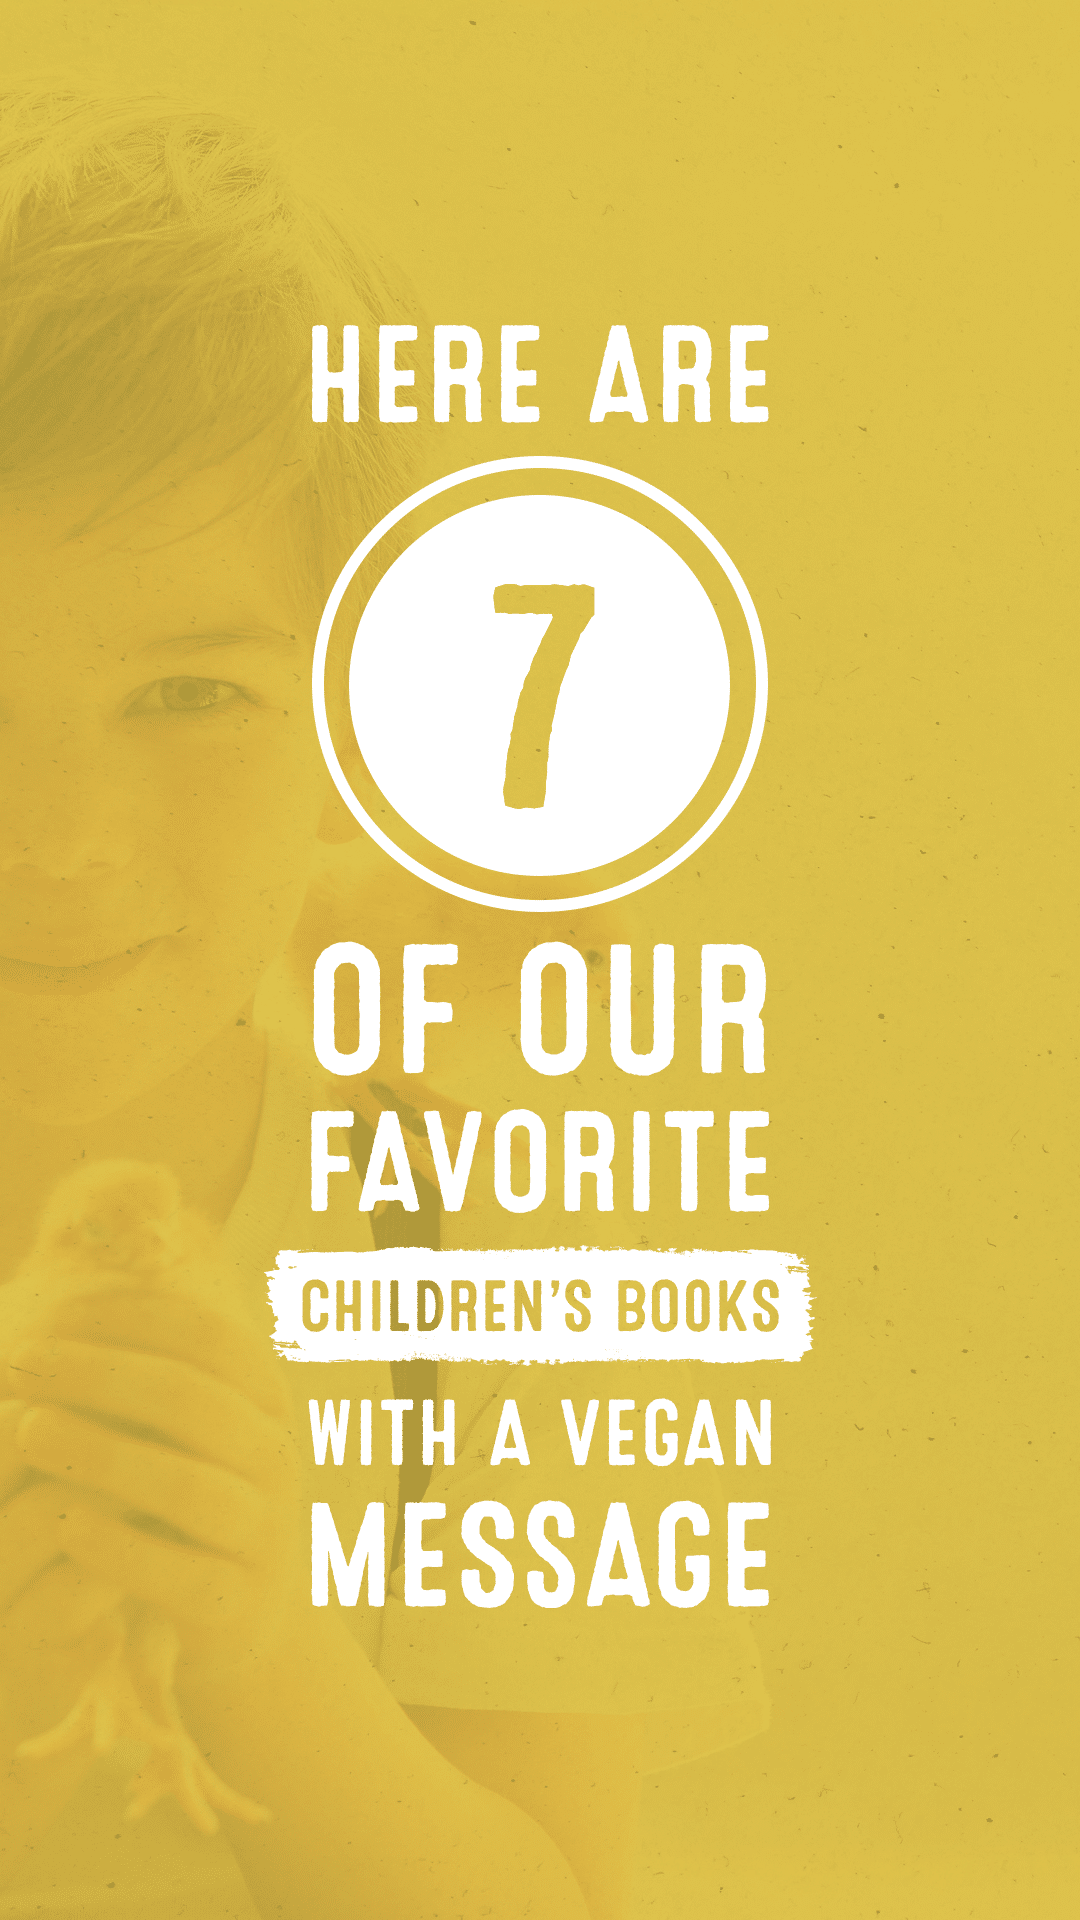 Here Are 7 of Our Favorite Children's Books With a Vegan Message